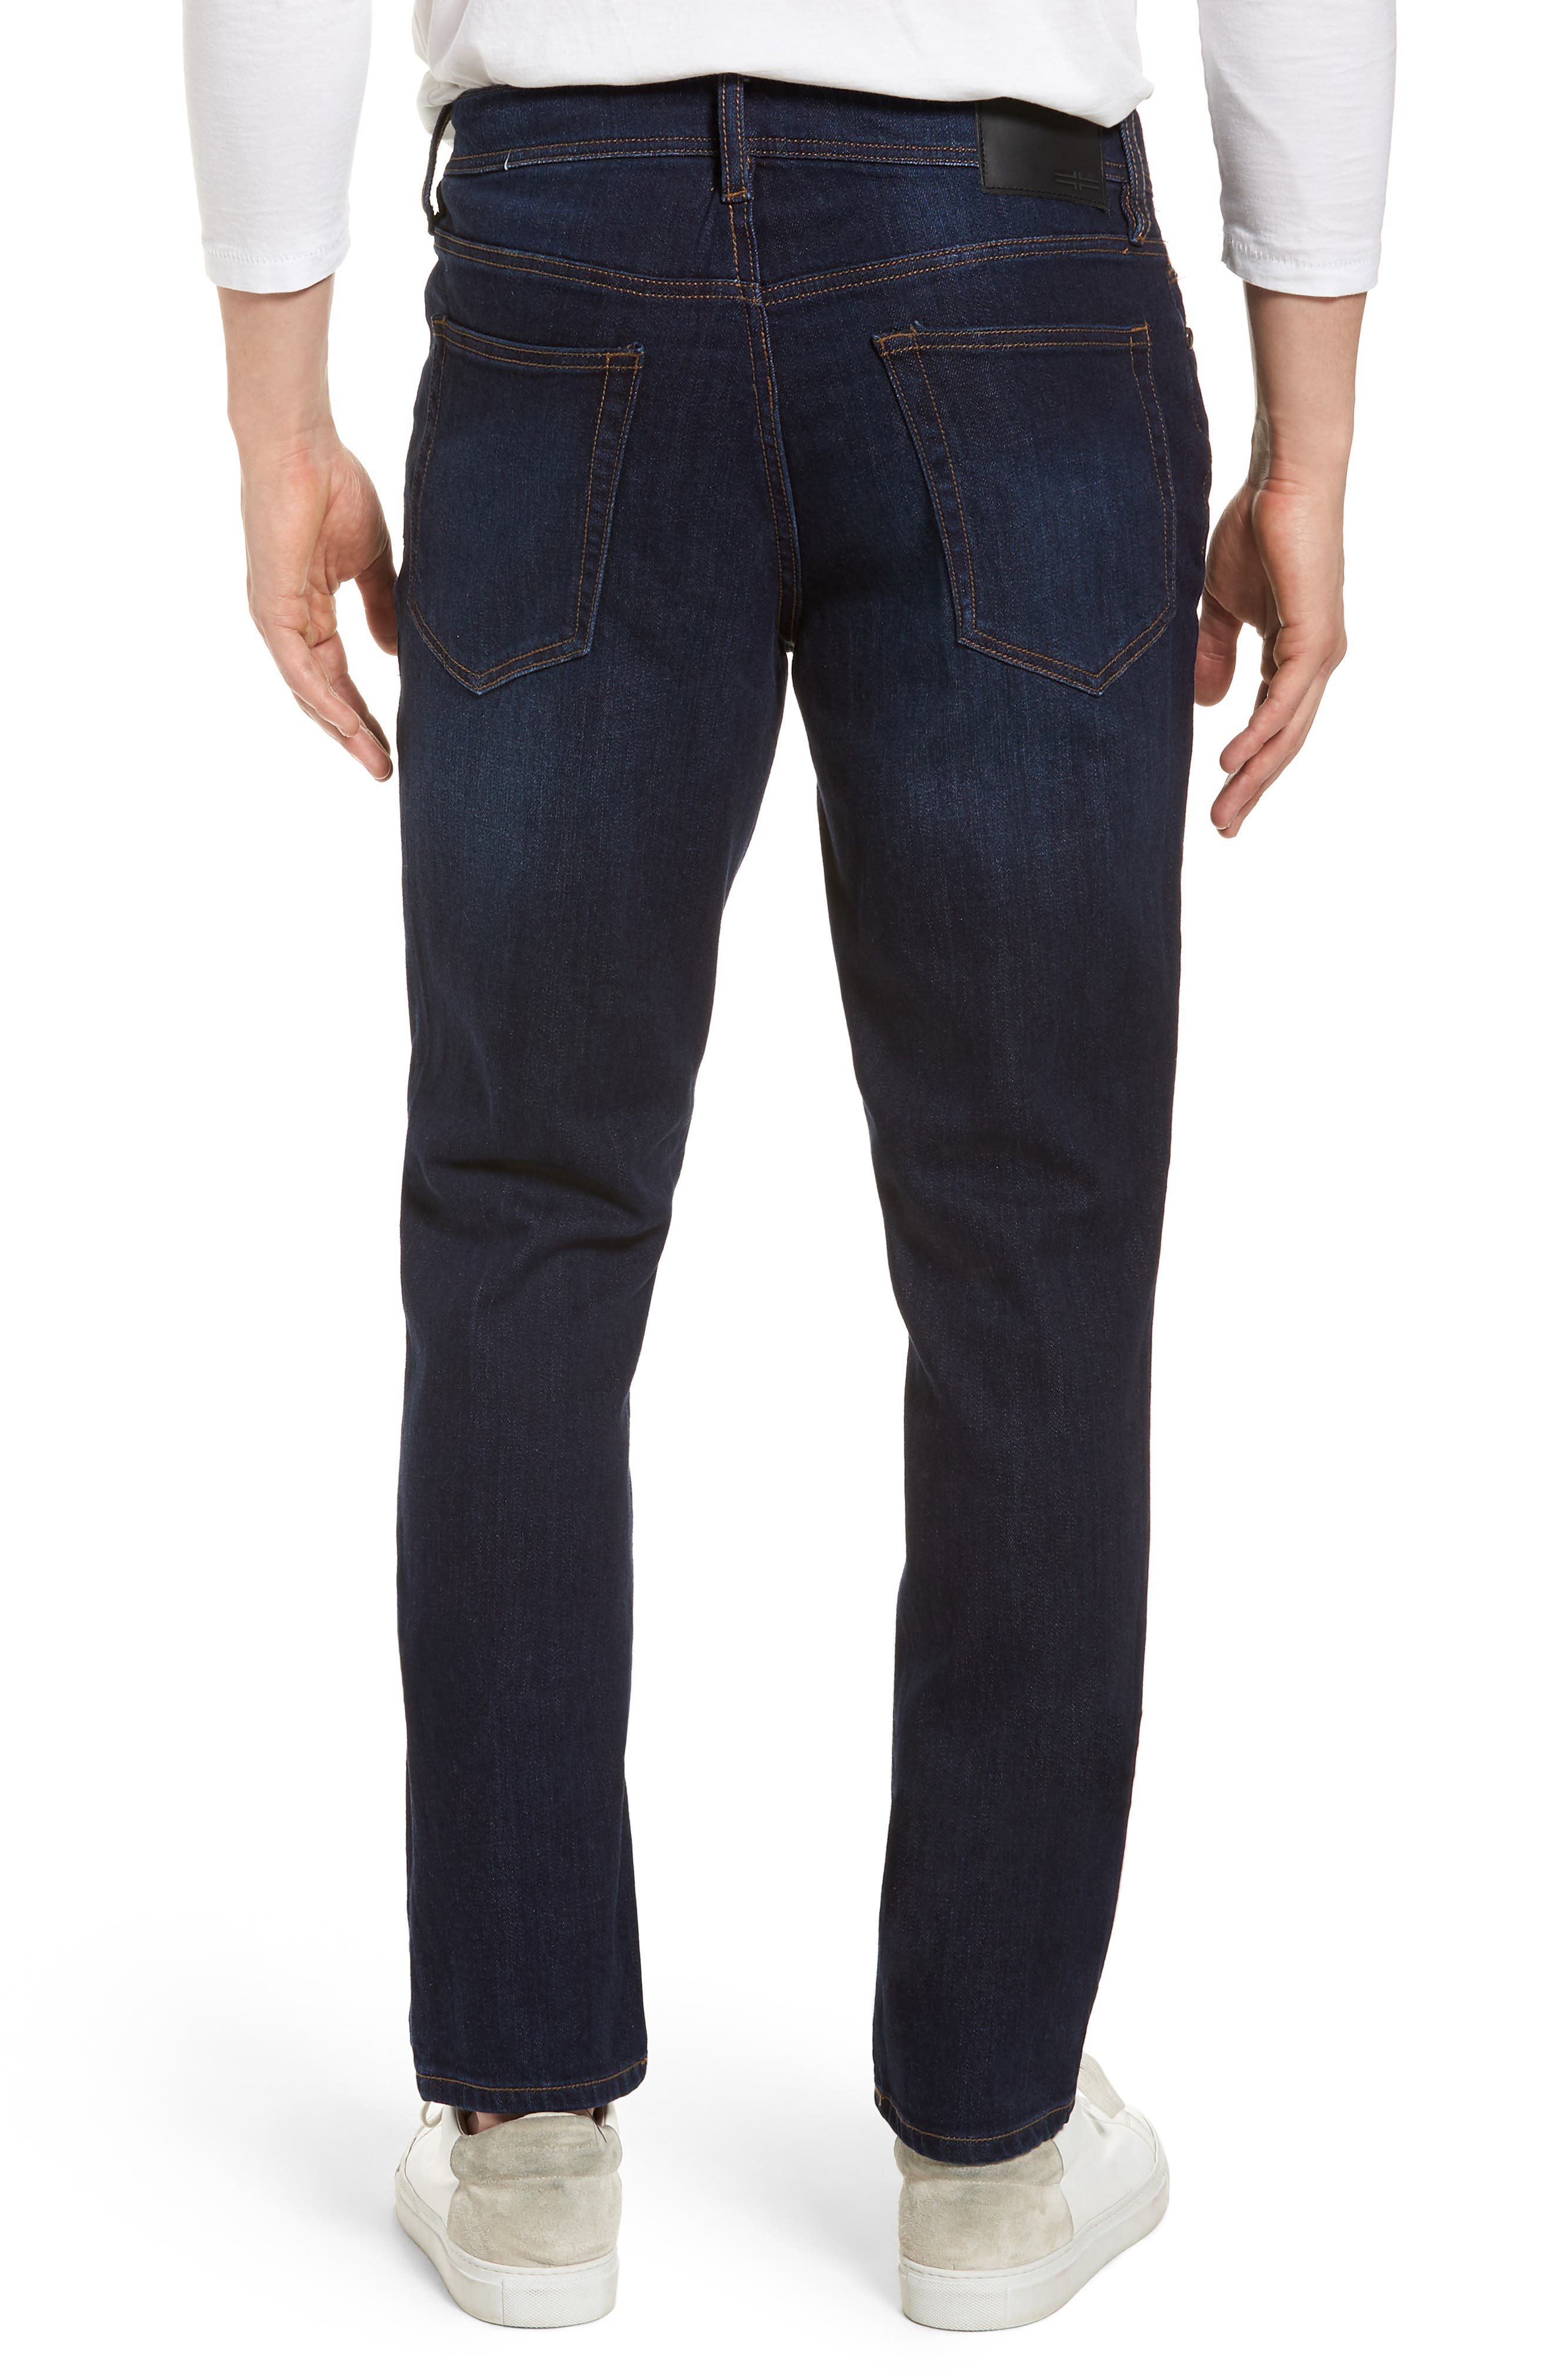 Jeans Co. Kingston Slim Straight Leg Jeans,                             Alternate thumbnail 2, color,                             San Ardo Vintage Dark